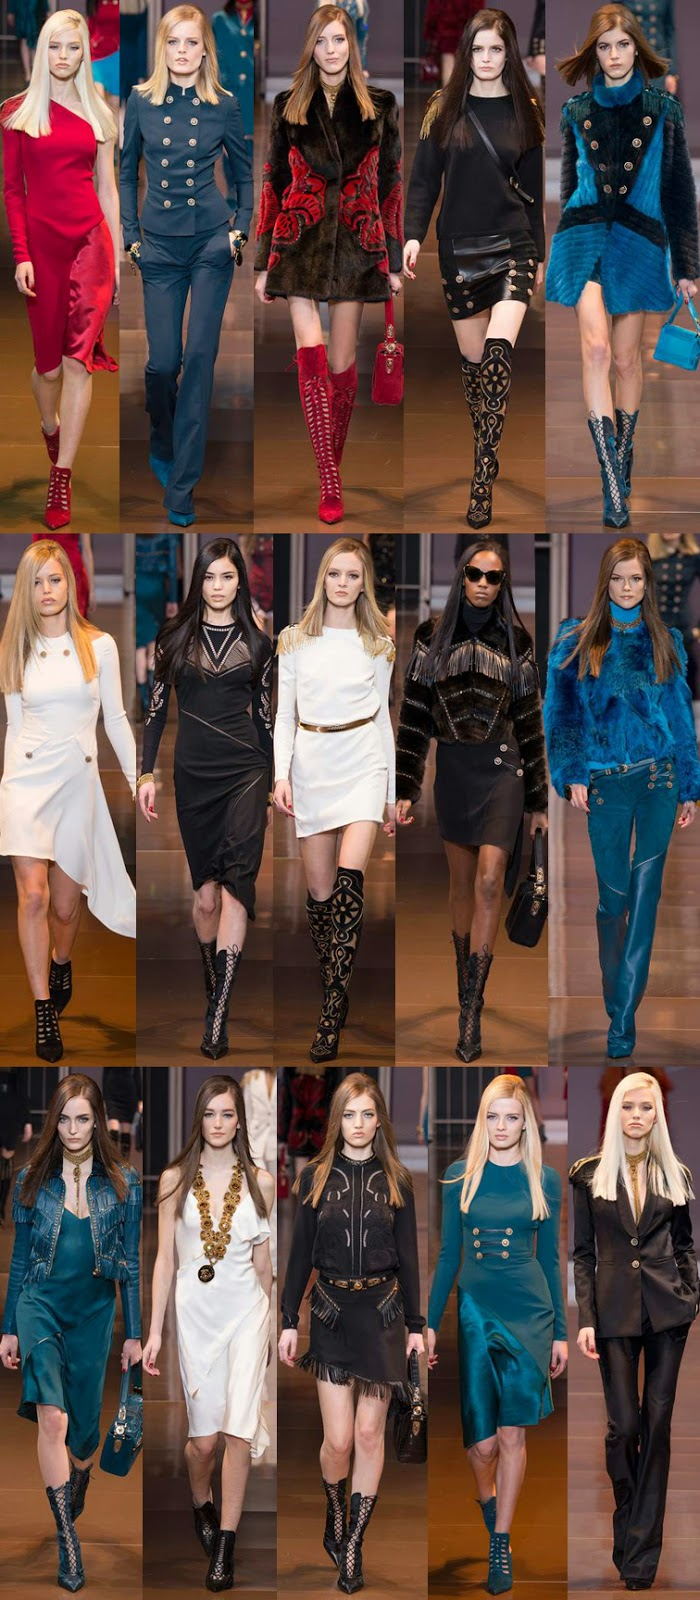 Versace fall winter 2014 runway collection, FW14, AW14, MFW, Milan fashion week, Donatella Versace